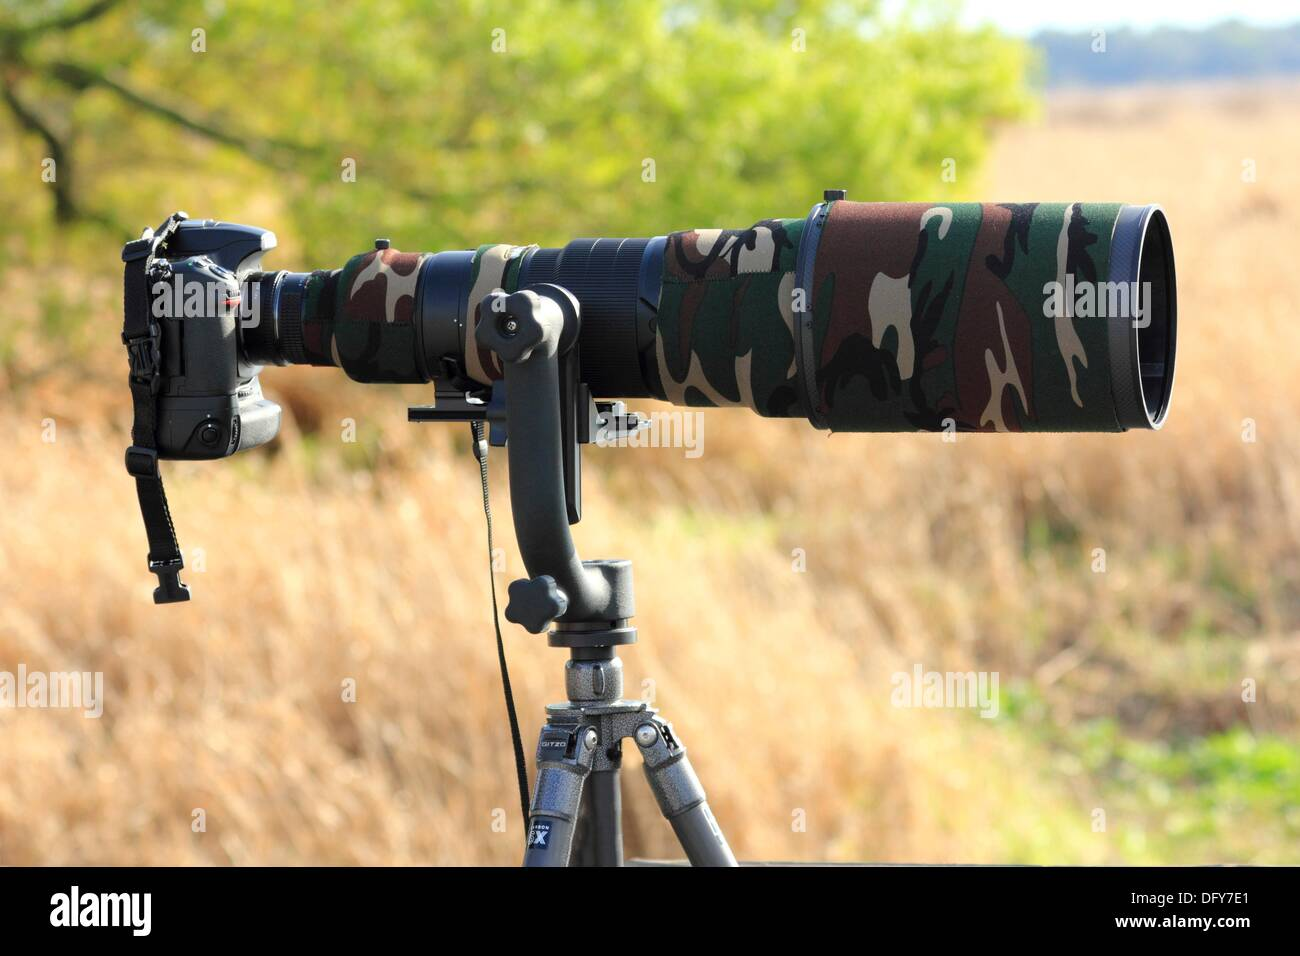 images?q=tbn:ANd9GcQh_l3eQ5xwiPy07kGEXjmjgmBKBRB7H2mRxCGhv1tFWg5c_mWT Awesome Nature Photography Camera @capturingmomentsphotography.net